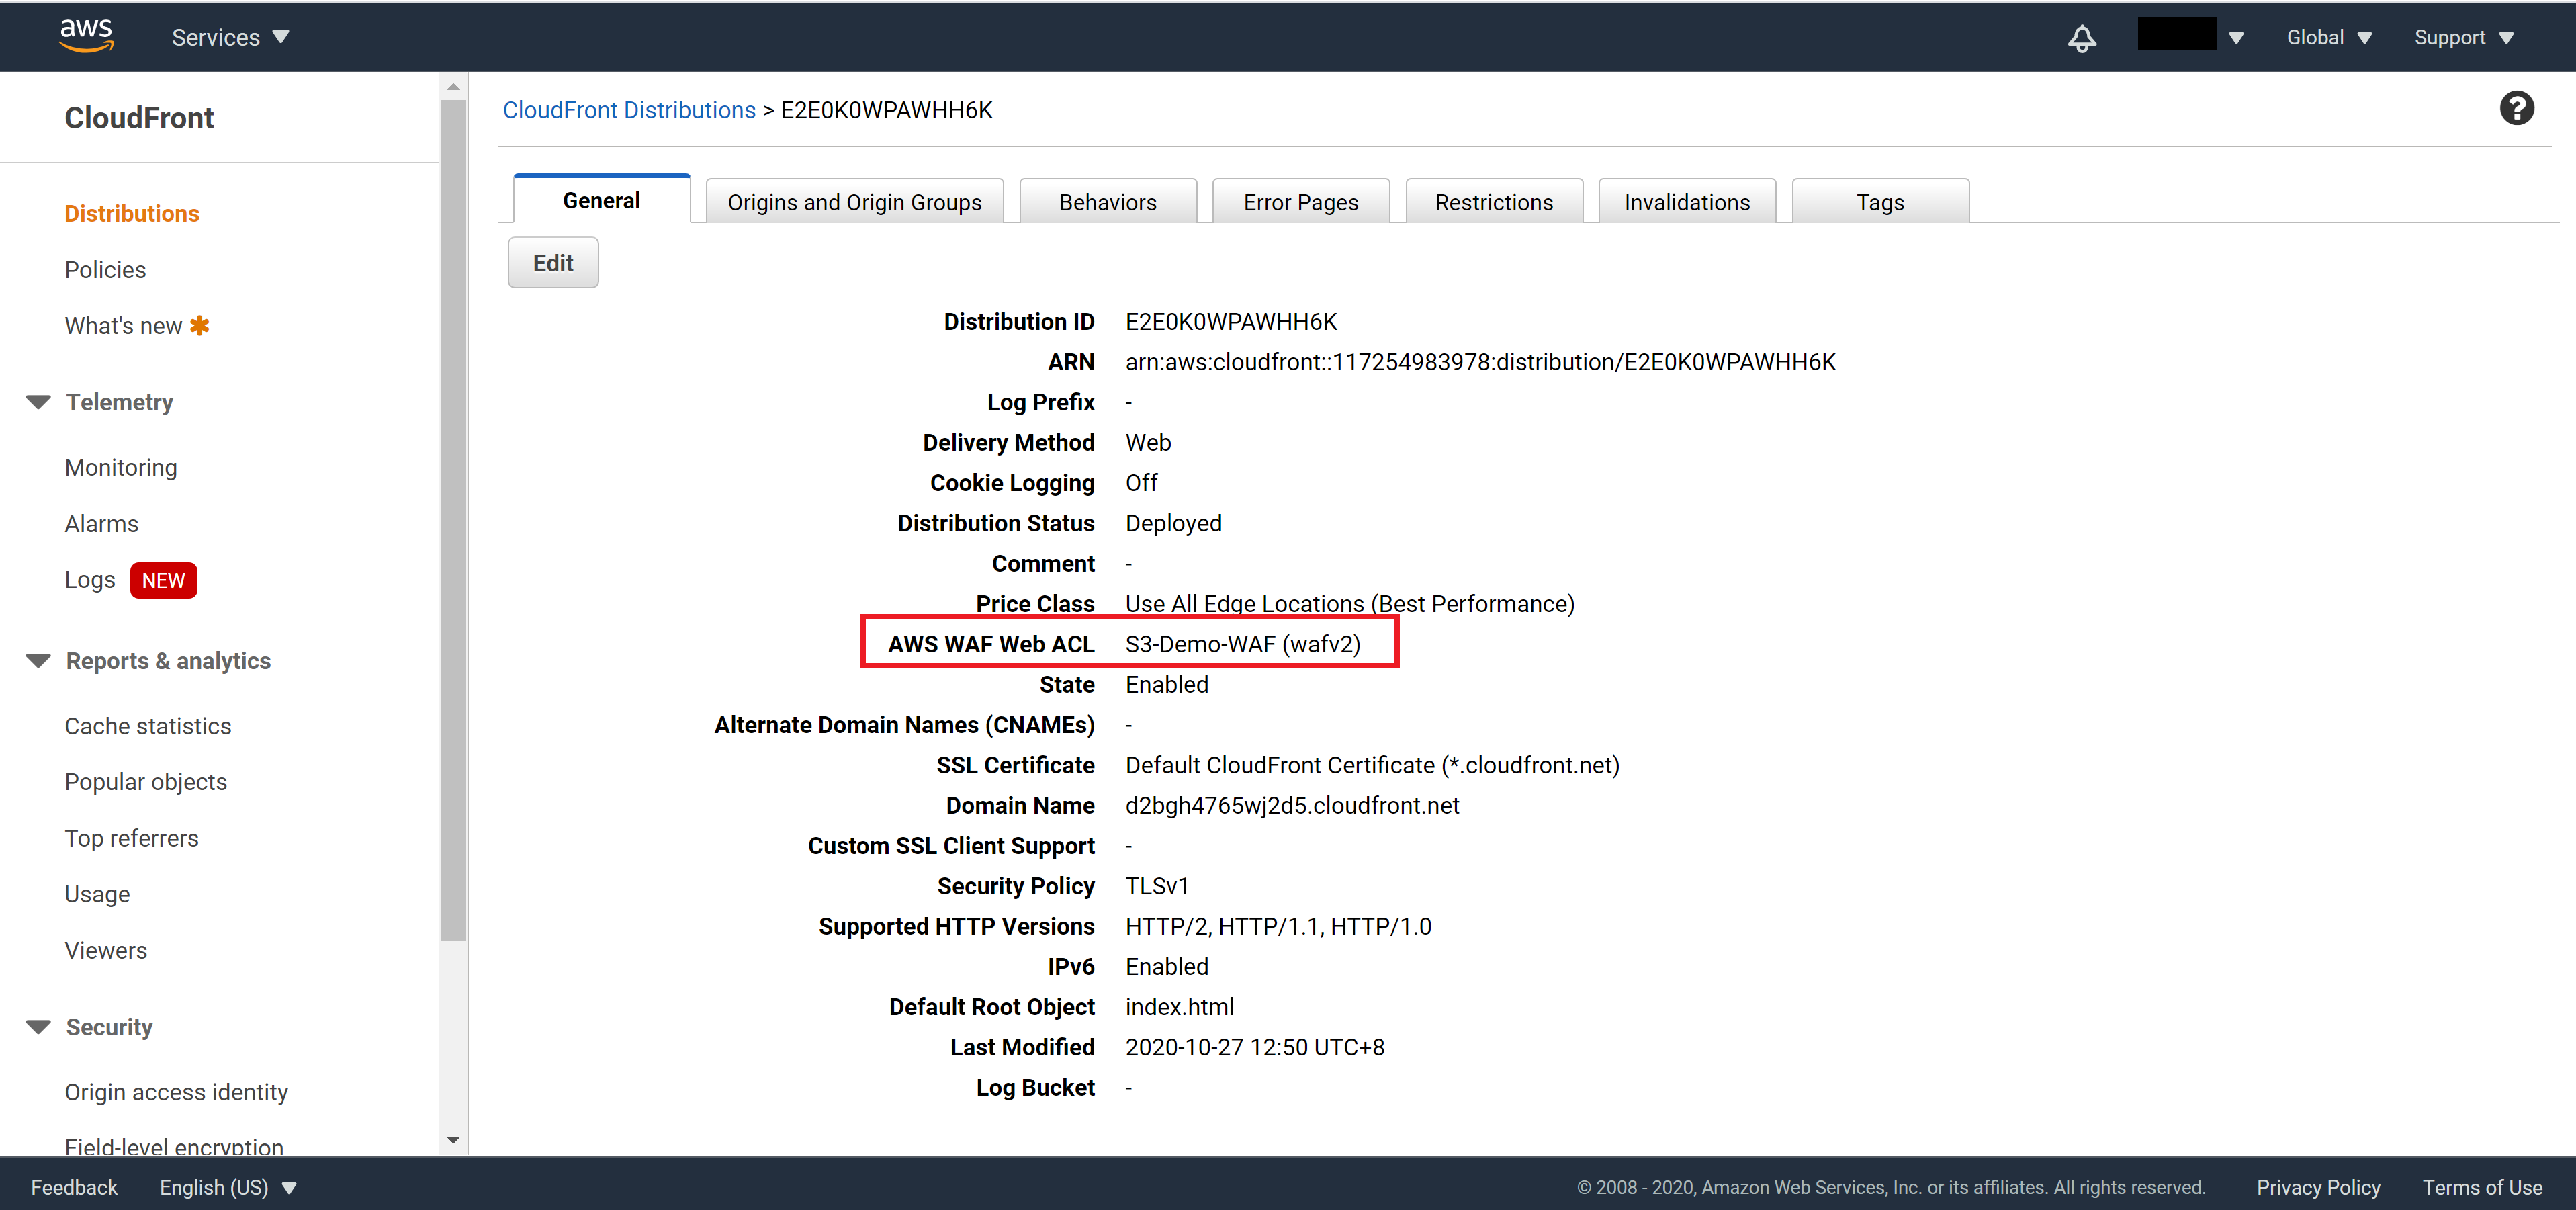 Confirm WAF setting on CloudFront